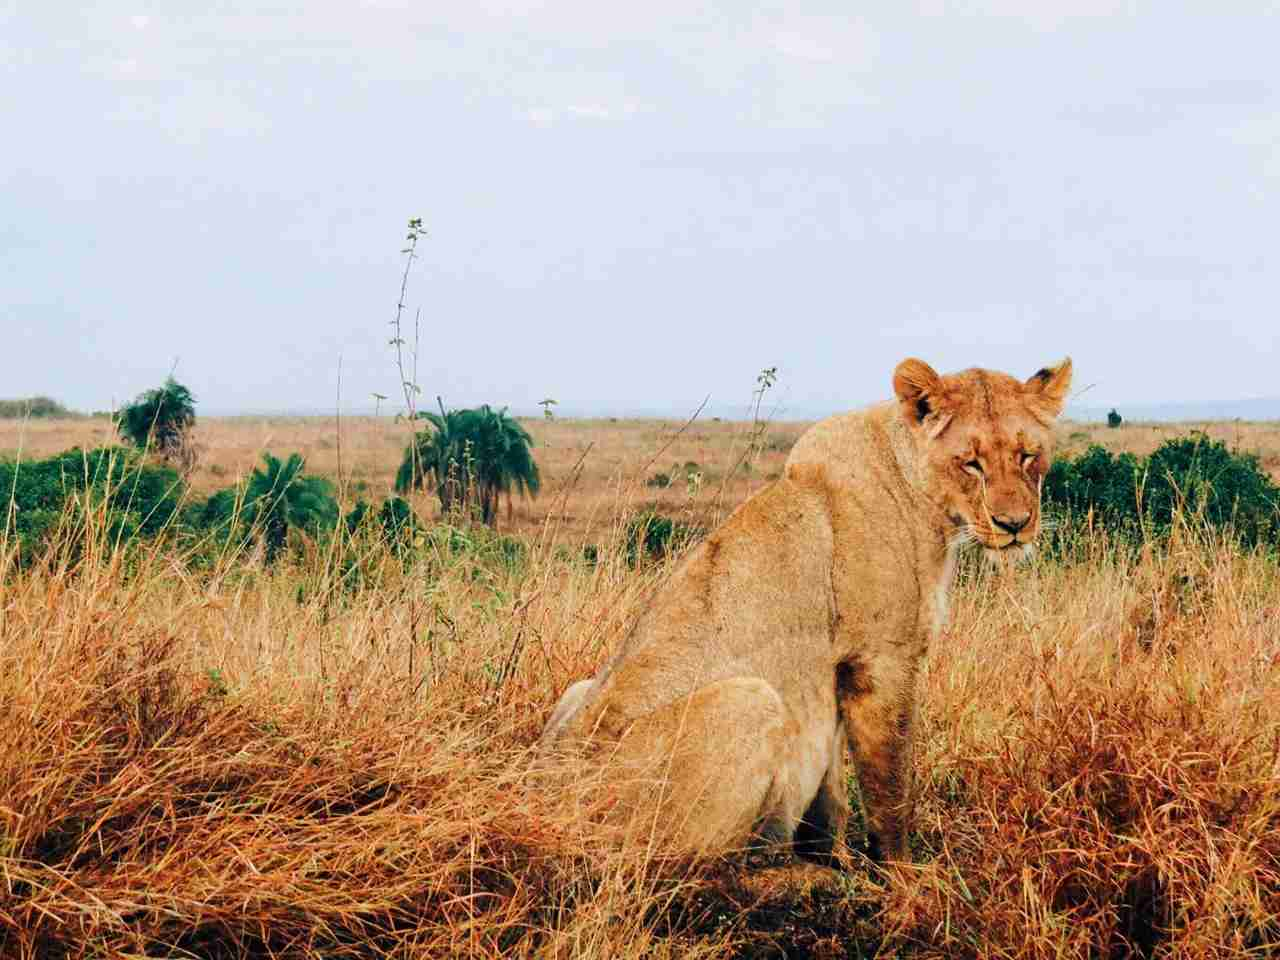 Lioness in the Nairobi National Park, Kenya. (Photo by @nana_dei via Twenty20)